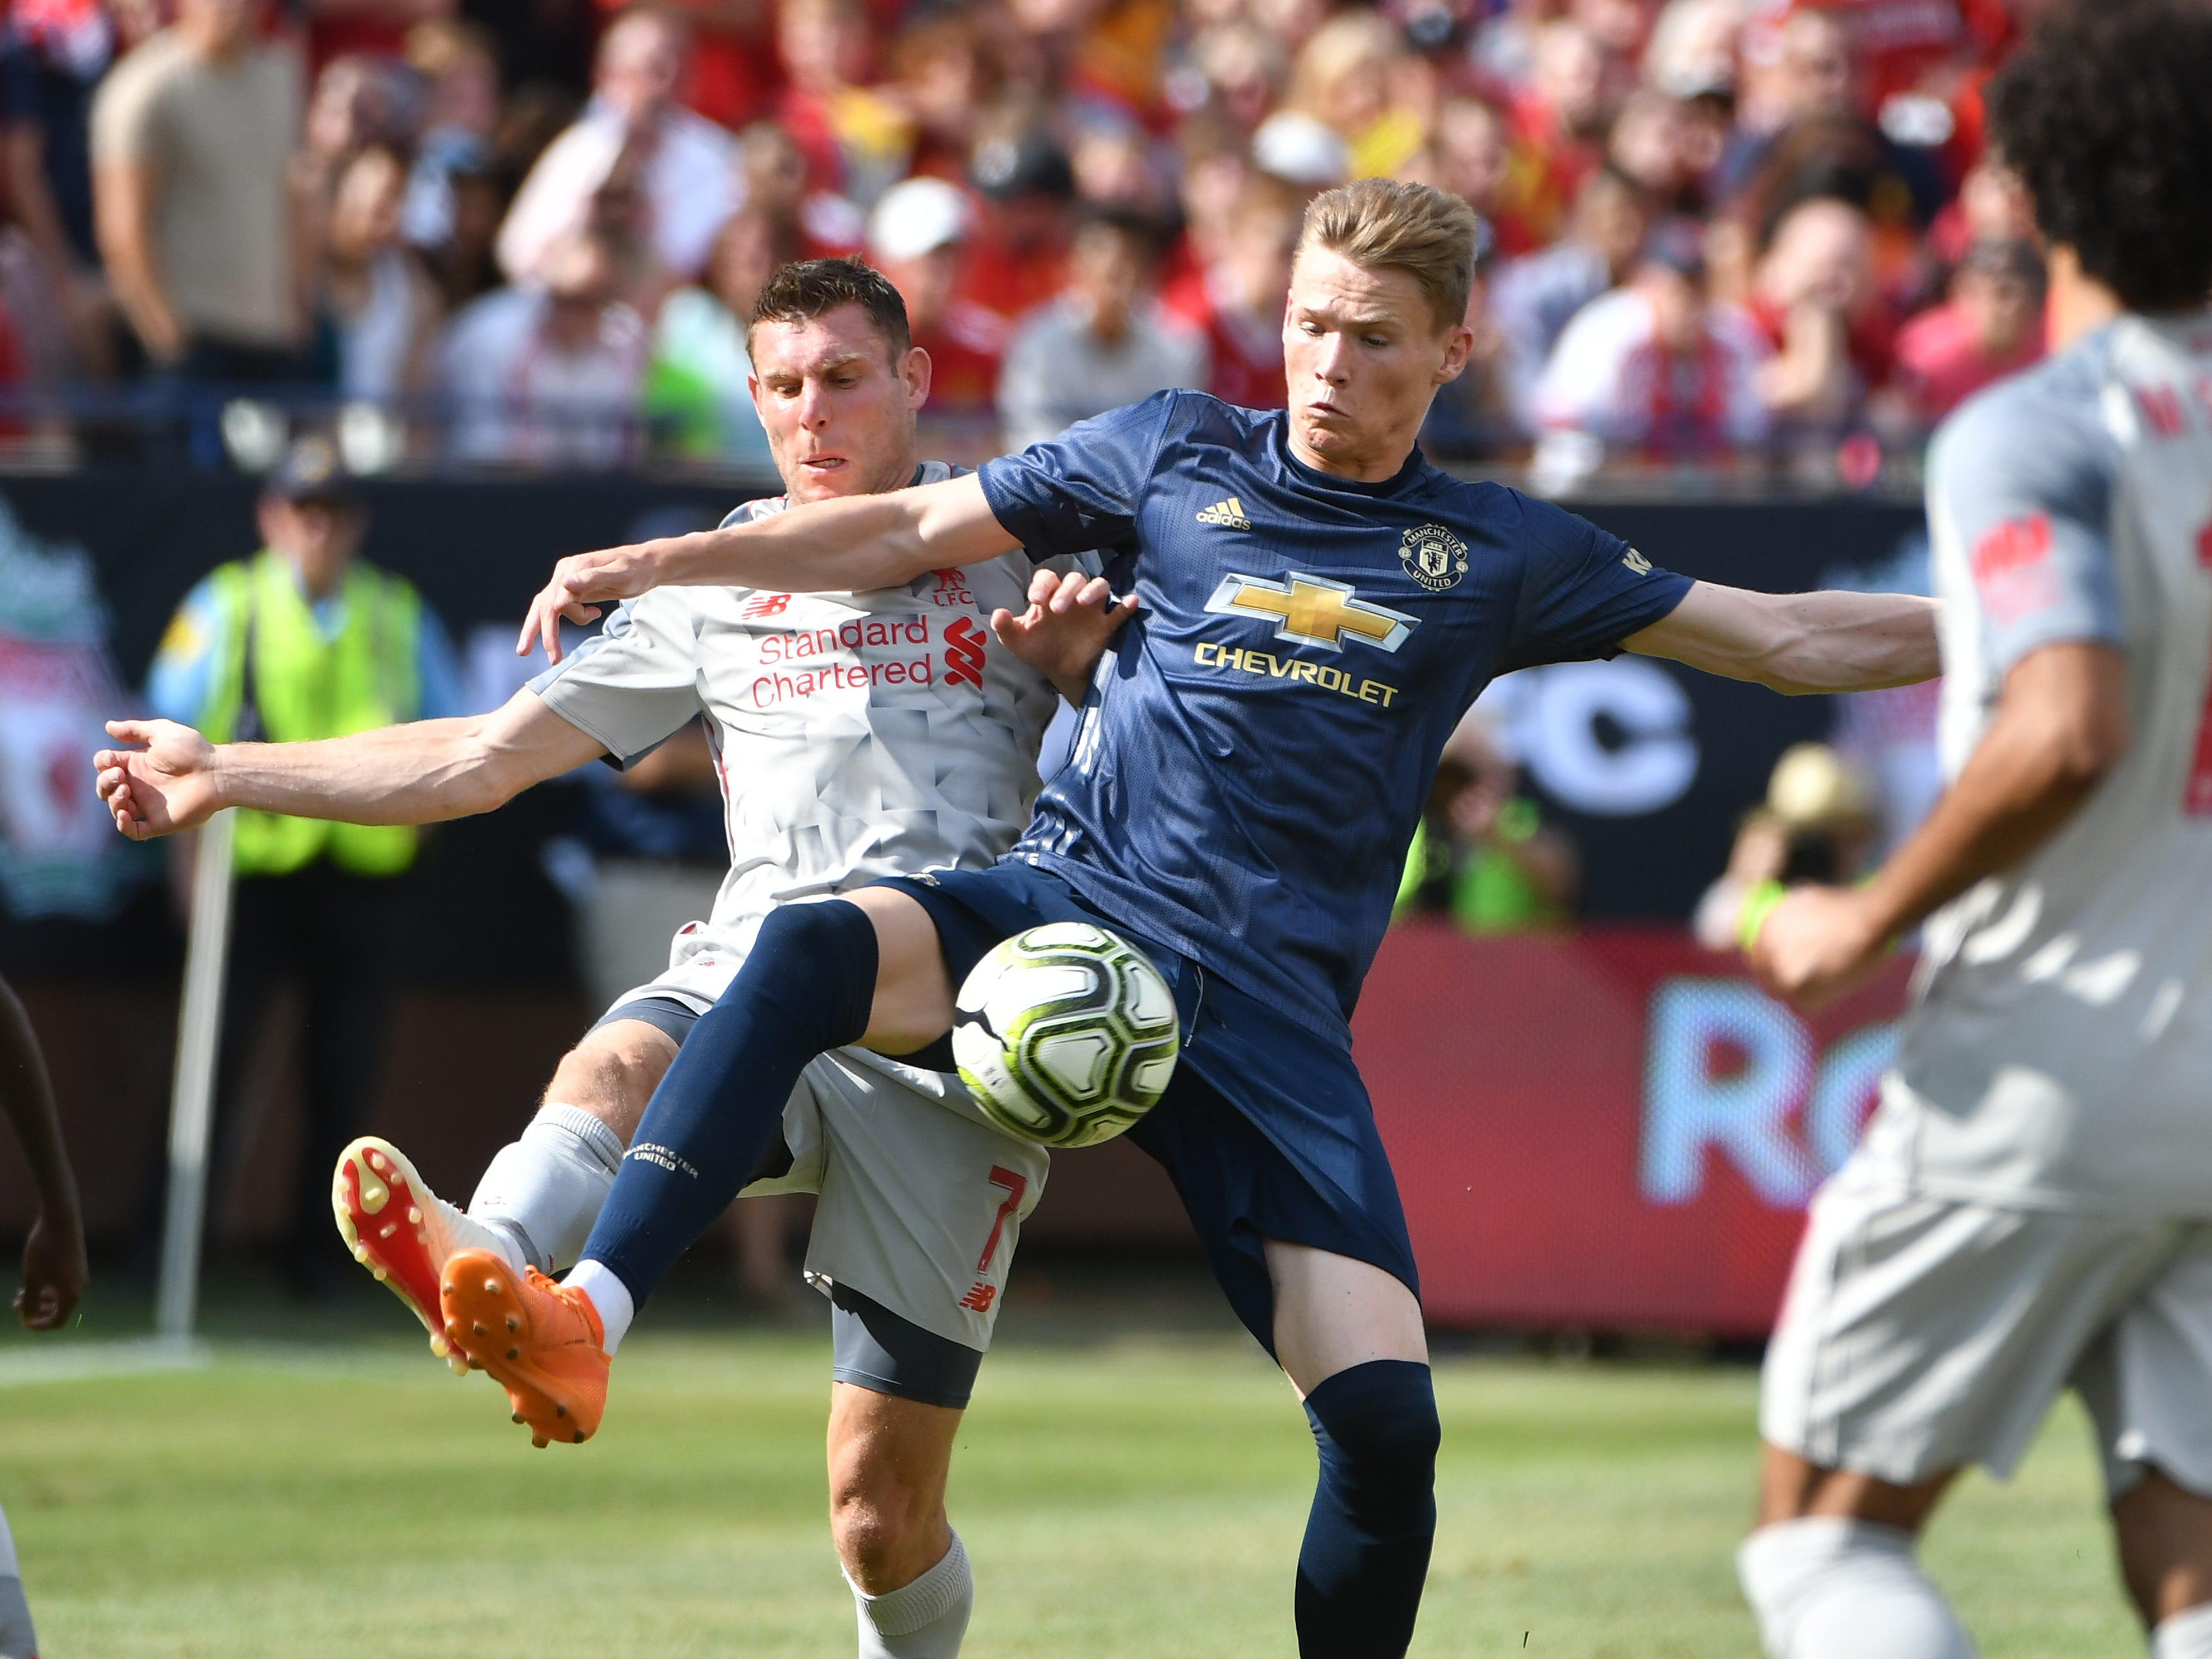 Liverpool's James Milner and Manchester's Scott McTominay battle over a ball in the first half.